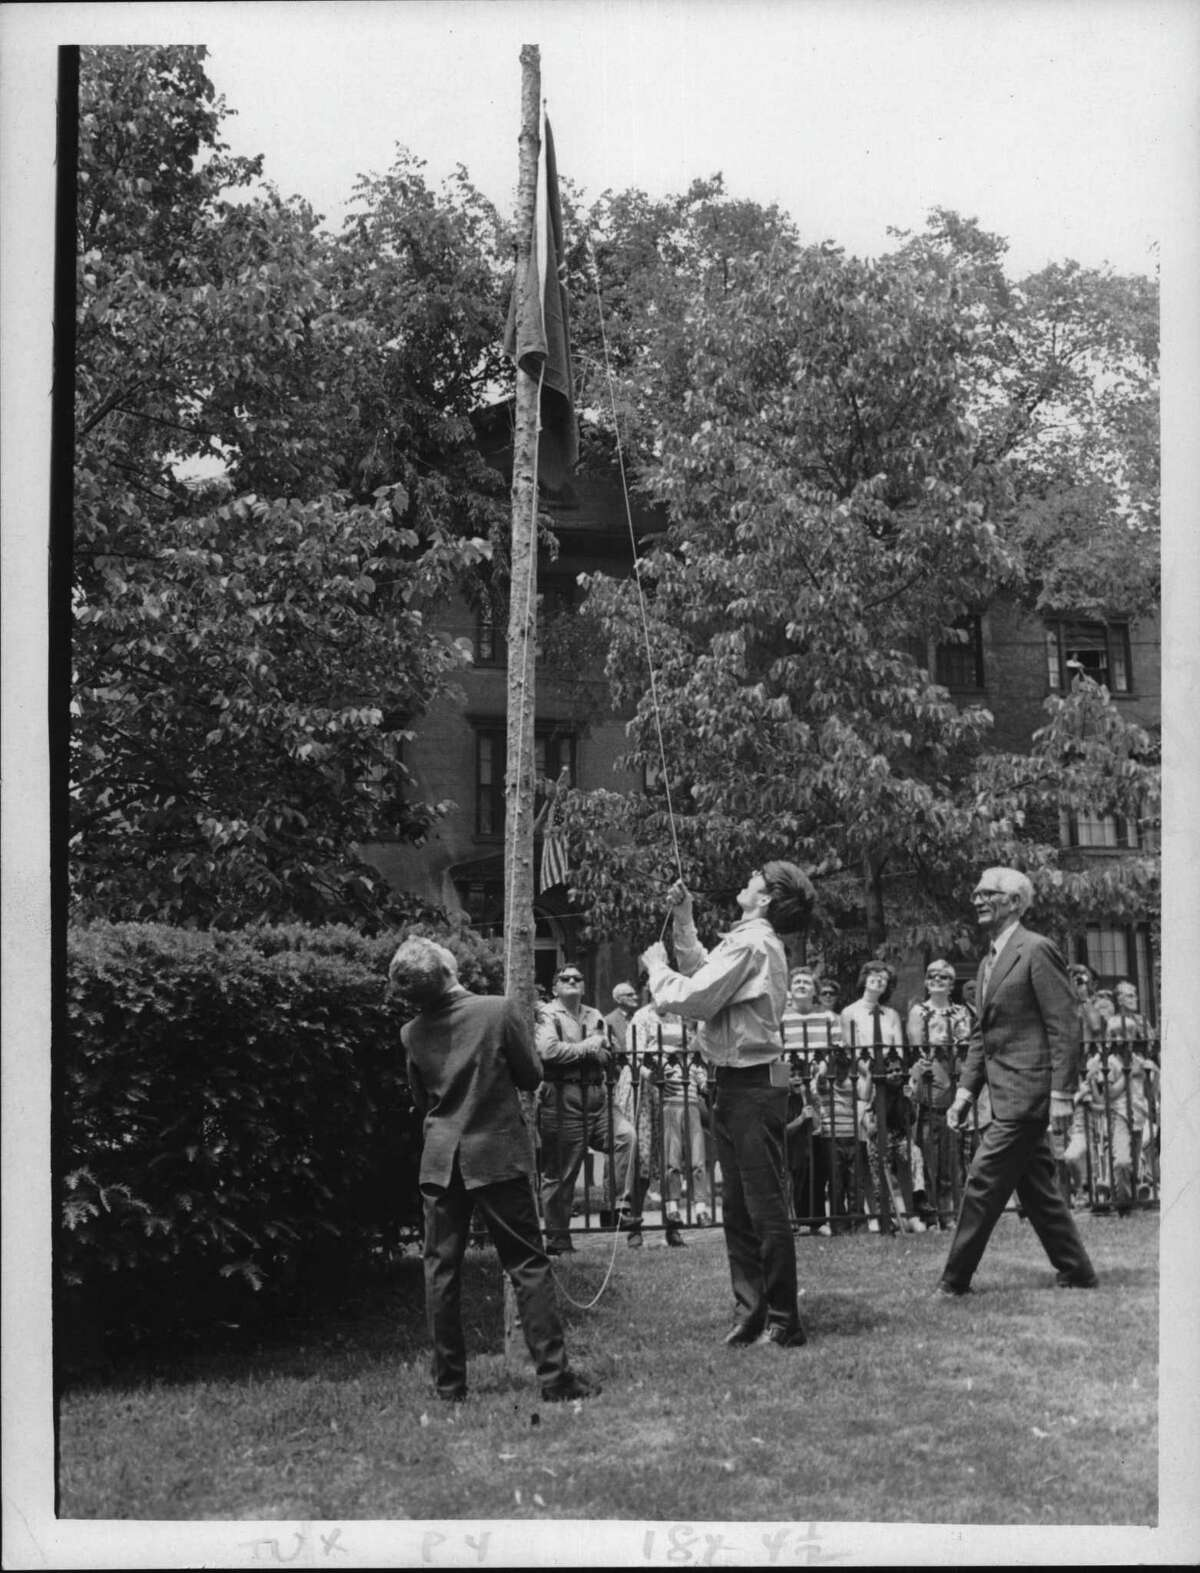 First Reformed Church, Schenectady, New York - Flag Day - replica of 1771 Liberty Flag - Jared Squires of Riverside School, Peter Van Vorst of Galway, and Horace Van Vorst of Schenectady. June 14, 1971 (Paul D. Kniskern, Sr./Times Union Archive)